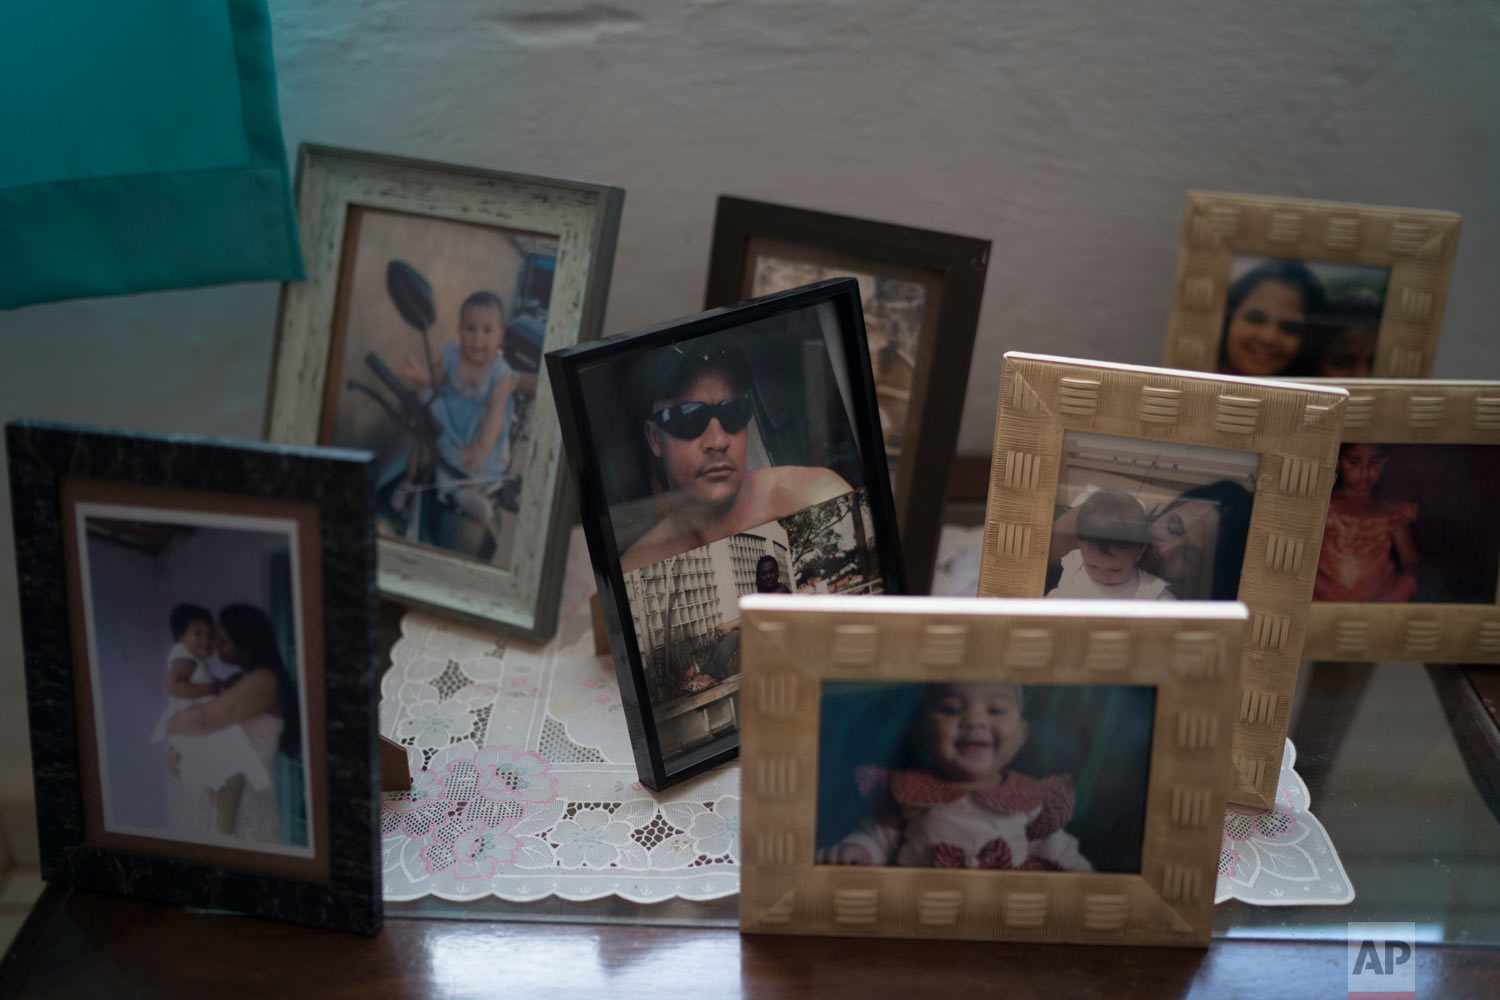 A photo of Peterson Nunes Ribeiro stands amid other family photos in his mother's living room in Brumadinho, Brazil, Jan. 30, 2019. (AP Photo/Leo Correa)